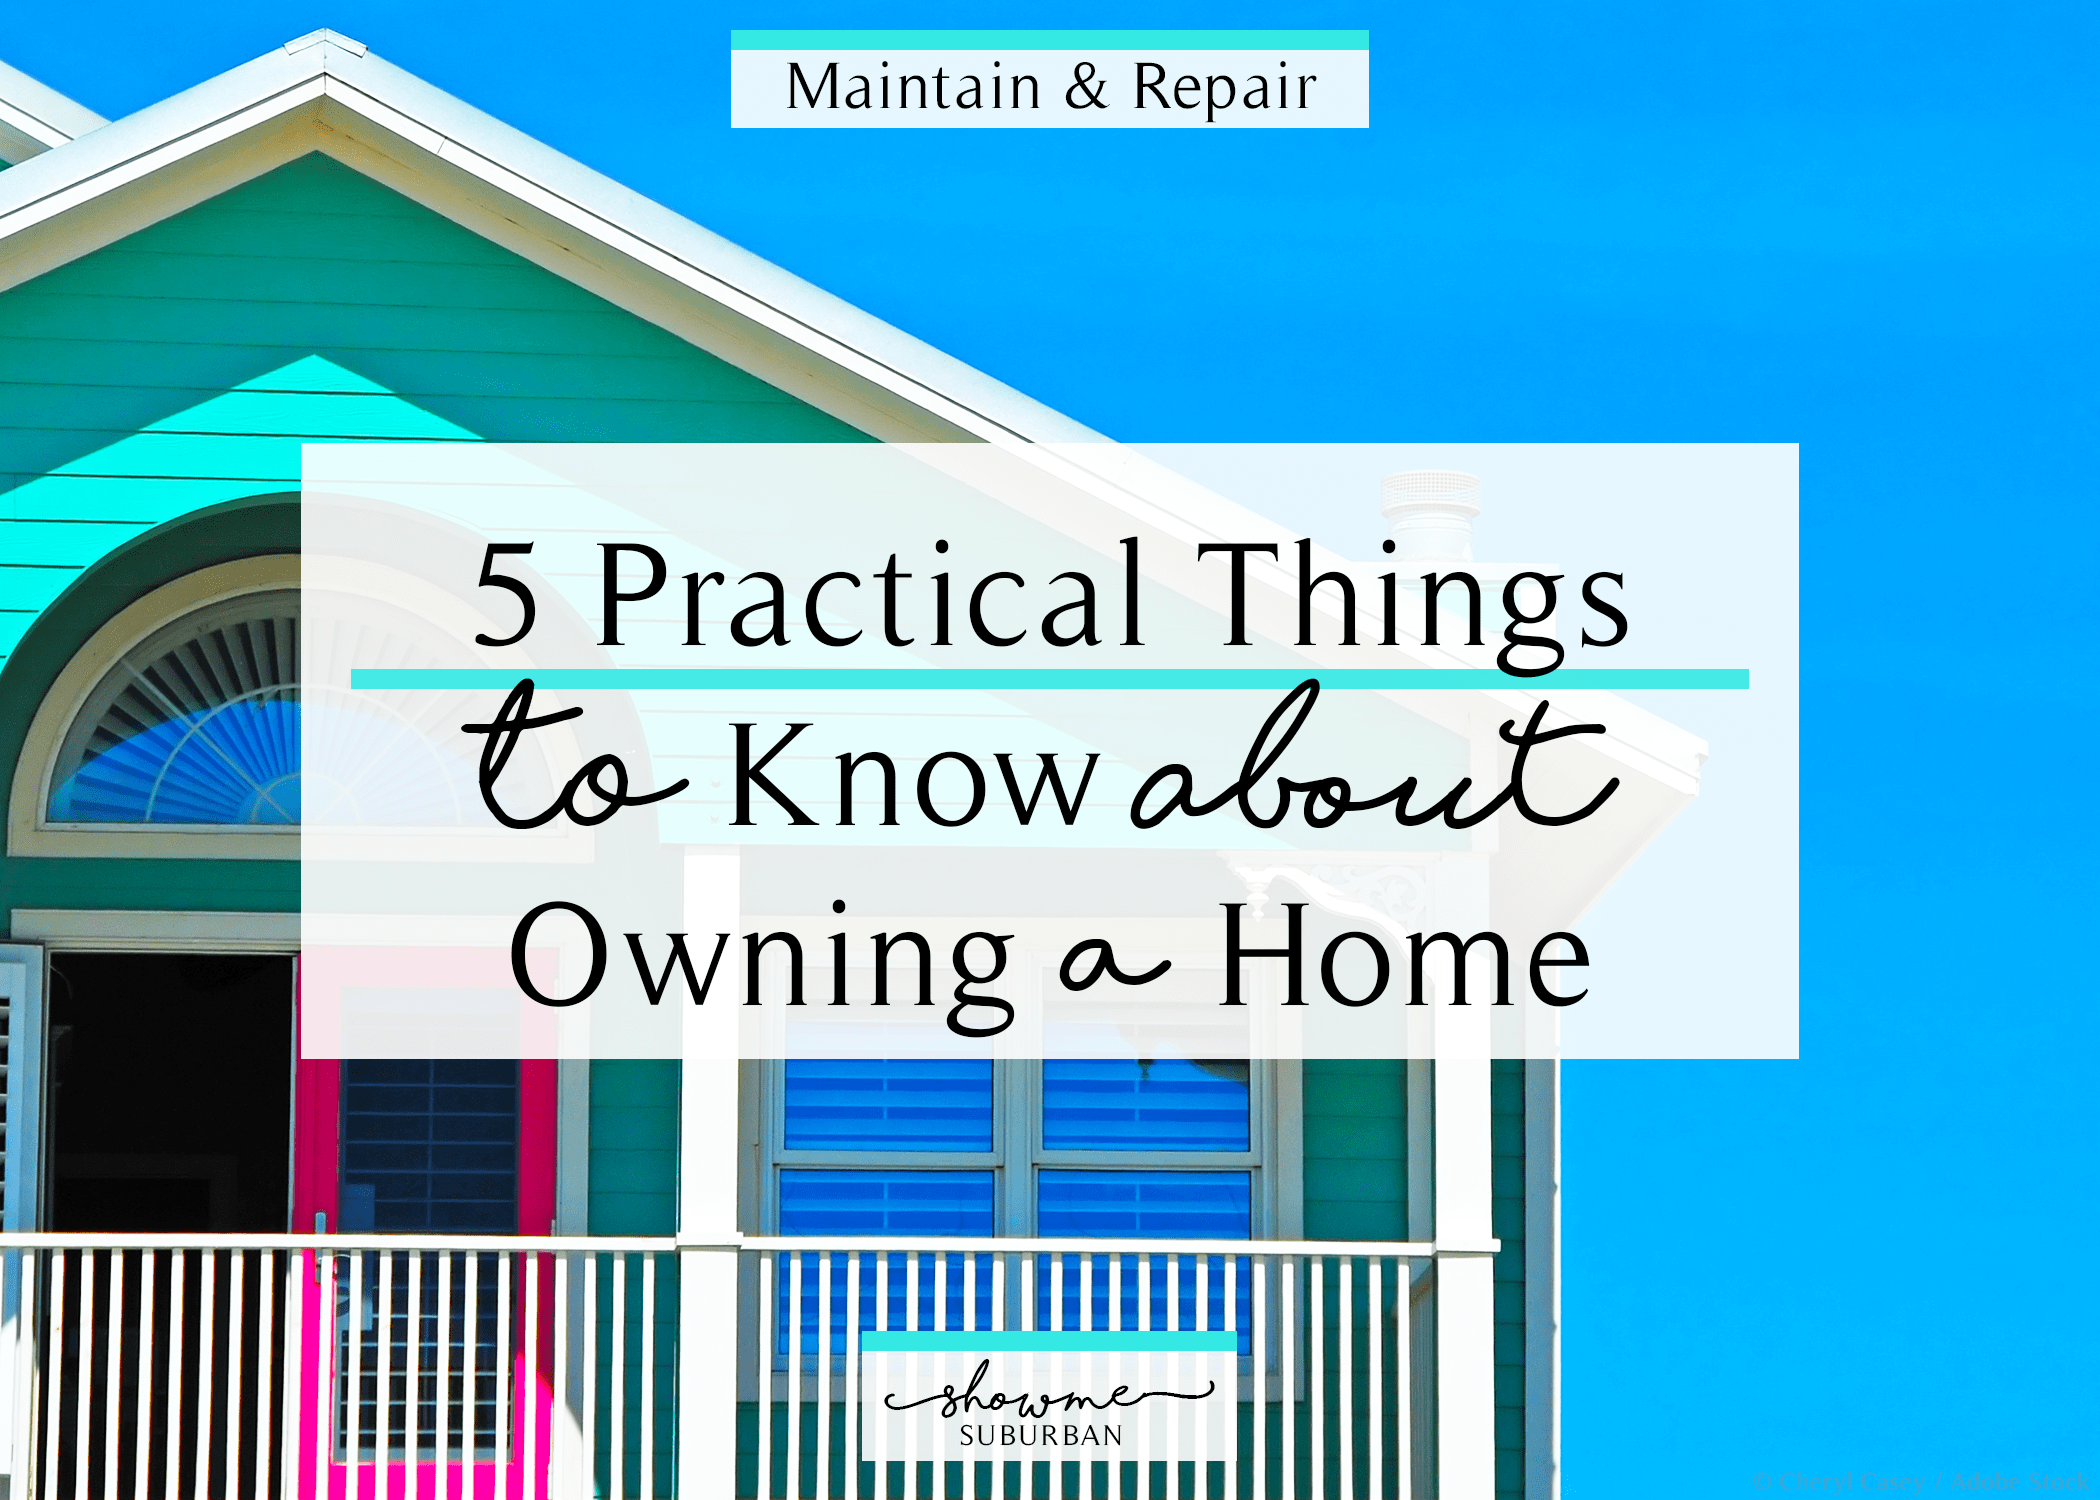 Whether you're a first-time homeowner or you've been in the game for a while, there are some things you should know about owning a home. These 5 homeowner tips are ones that almost no one tells you, but they're vital to successful home maintenance and DIY projects. Includes a free printable home maintenance issues worksheet!